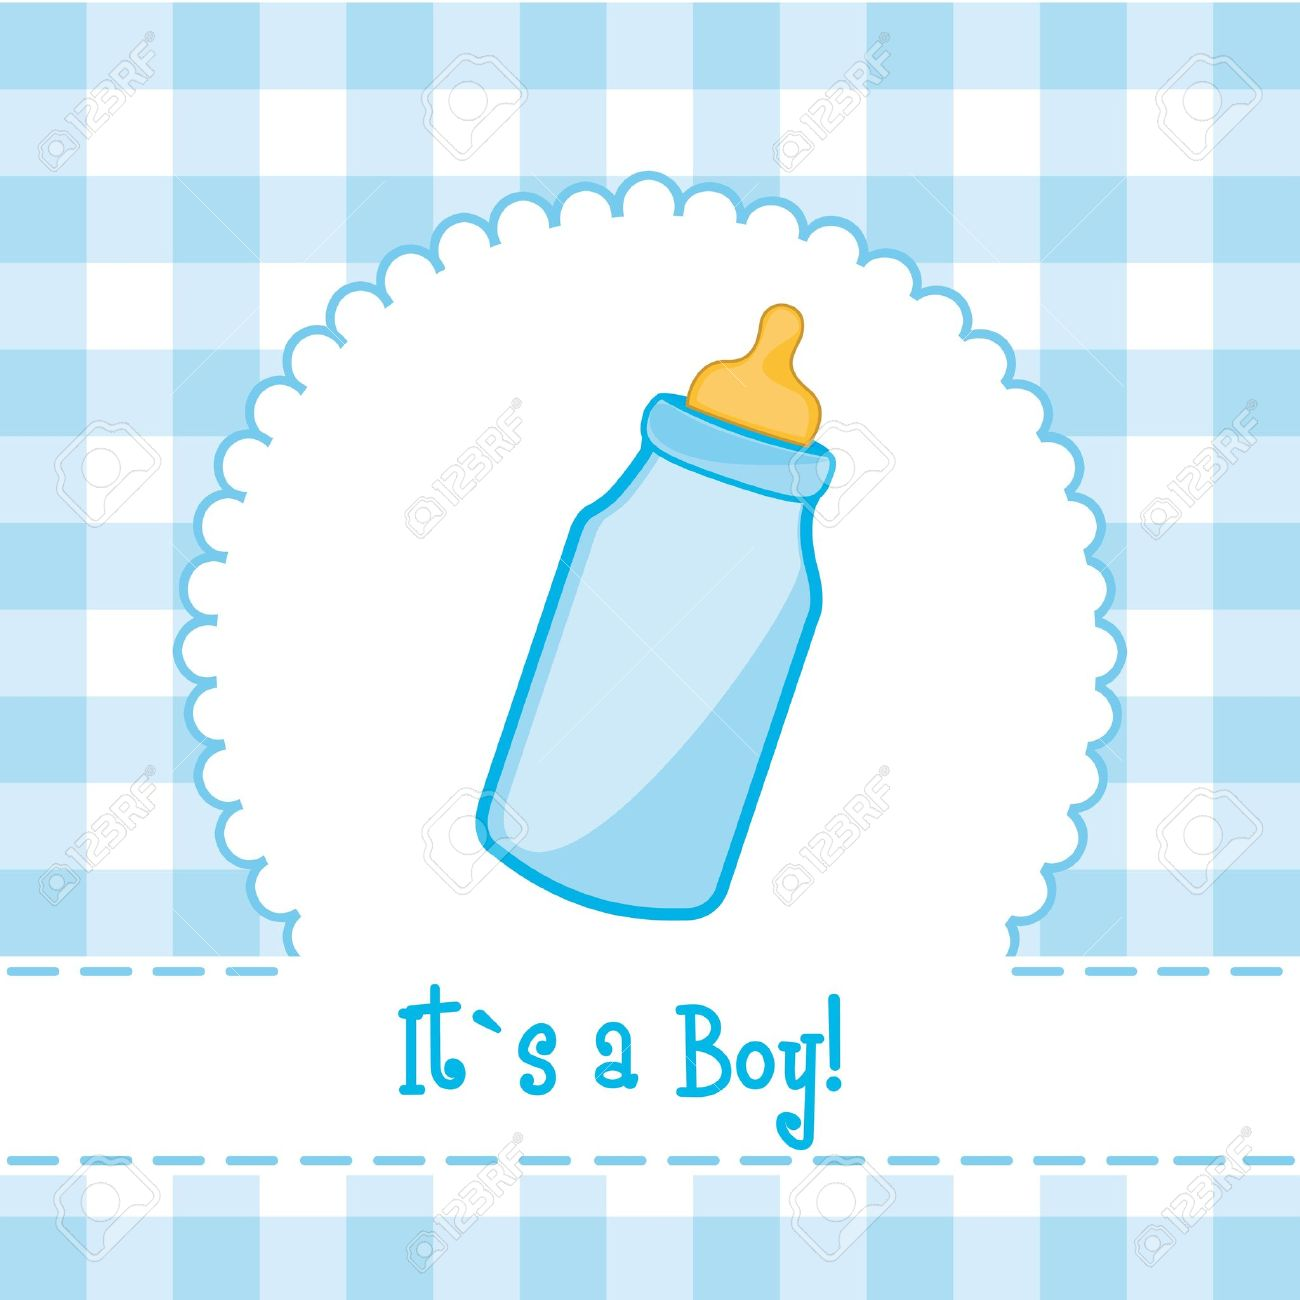 Its A Boy Card With Baby Bottle Baby Shower Illustration Royalty